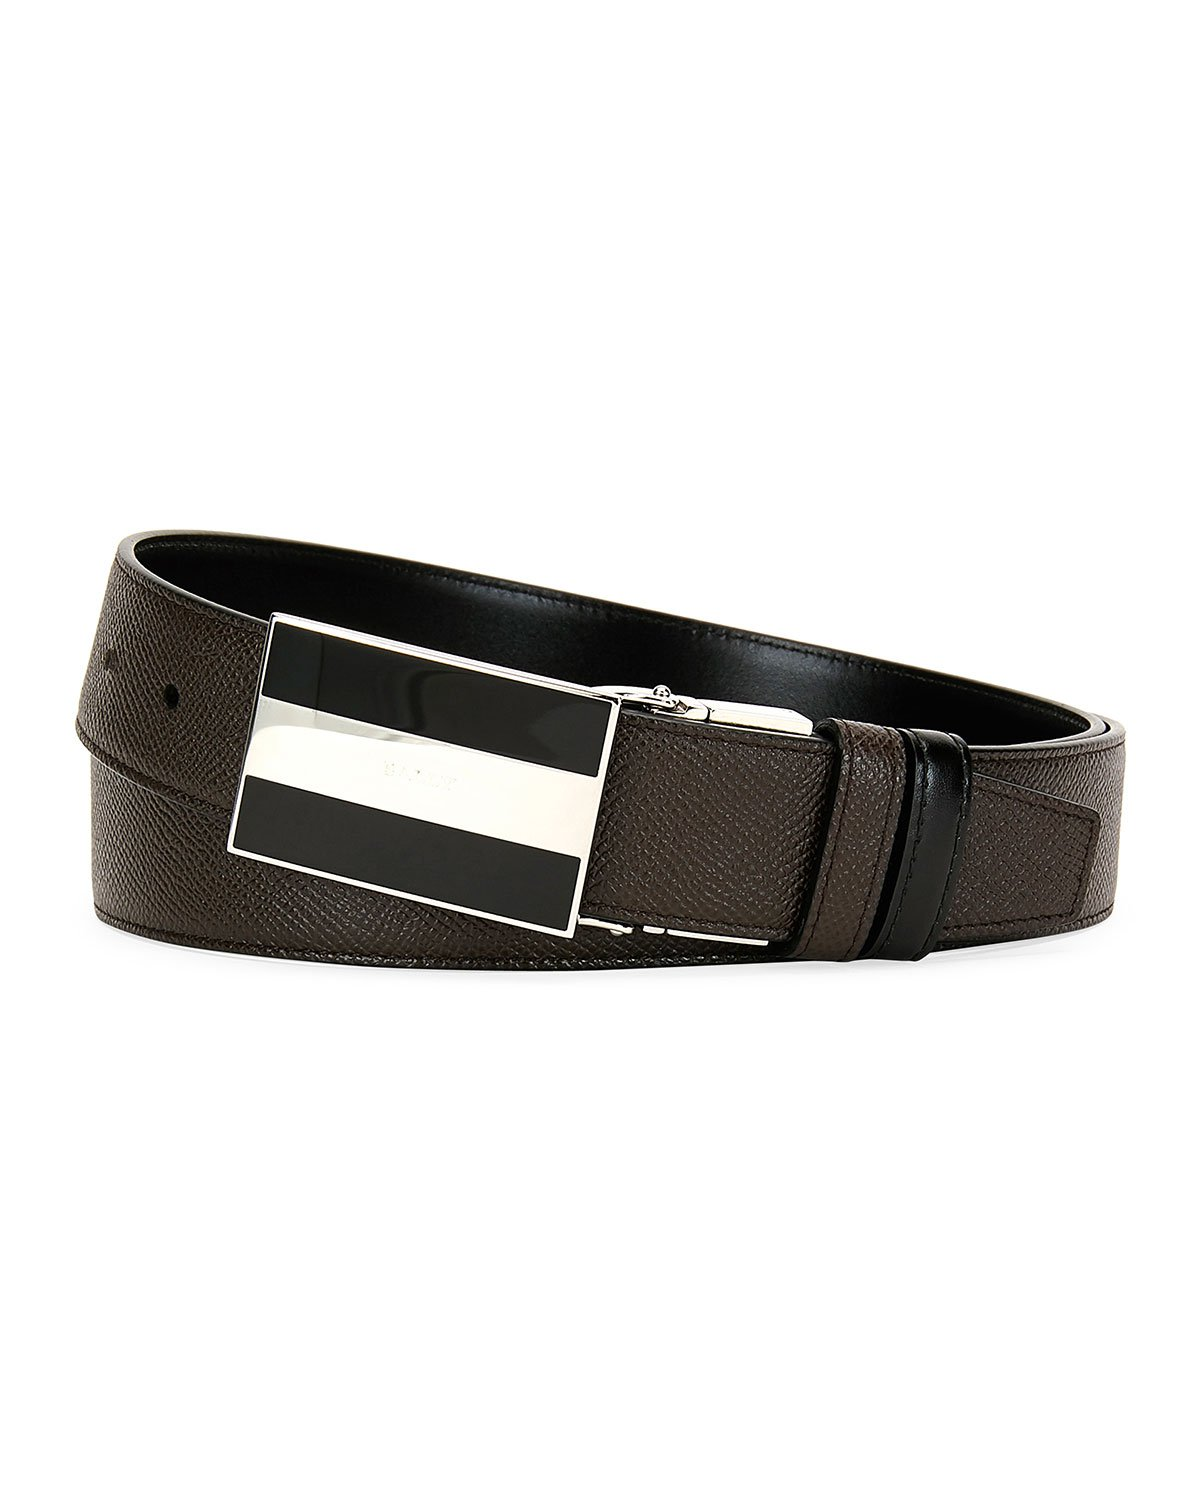 Bally Bogart Calf Leather Belt